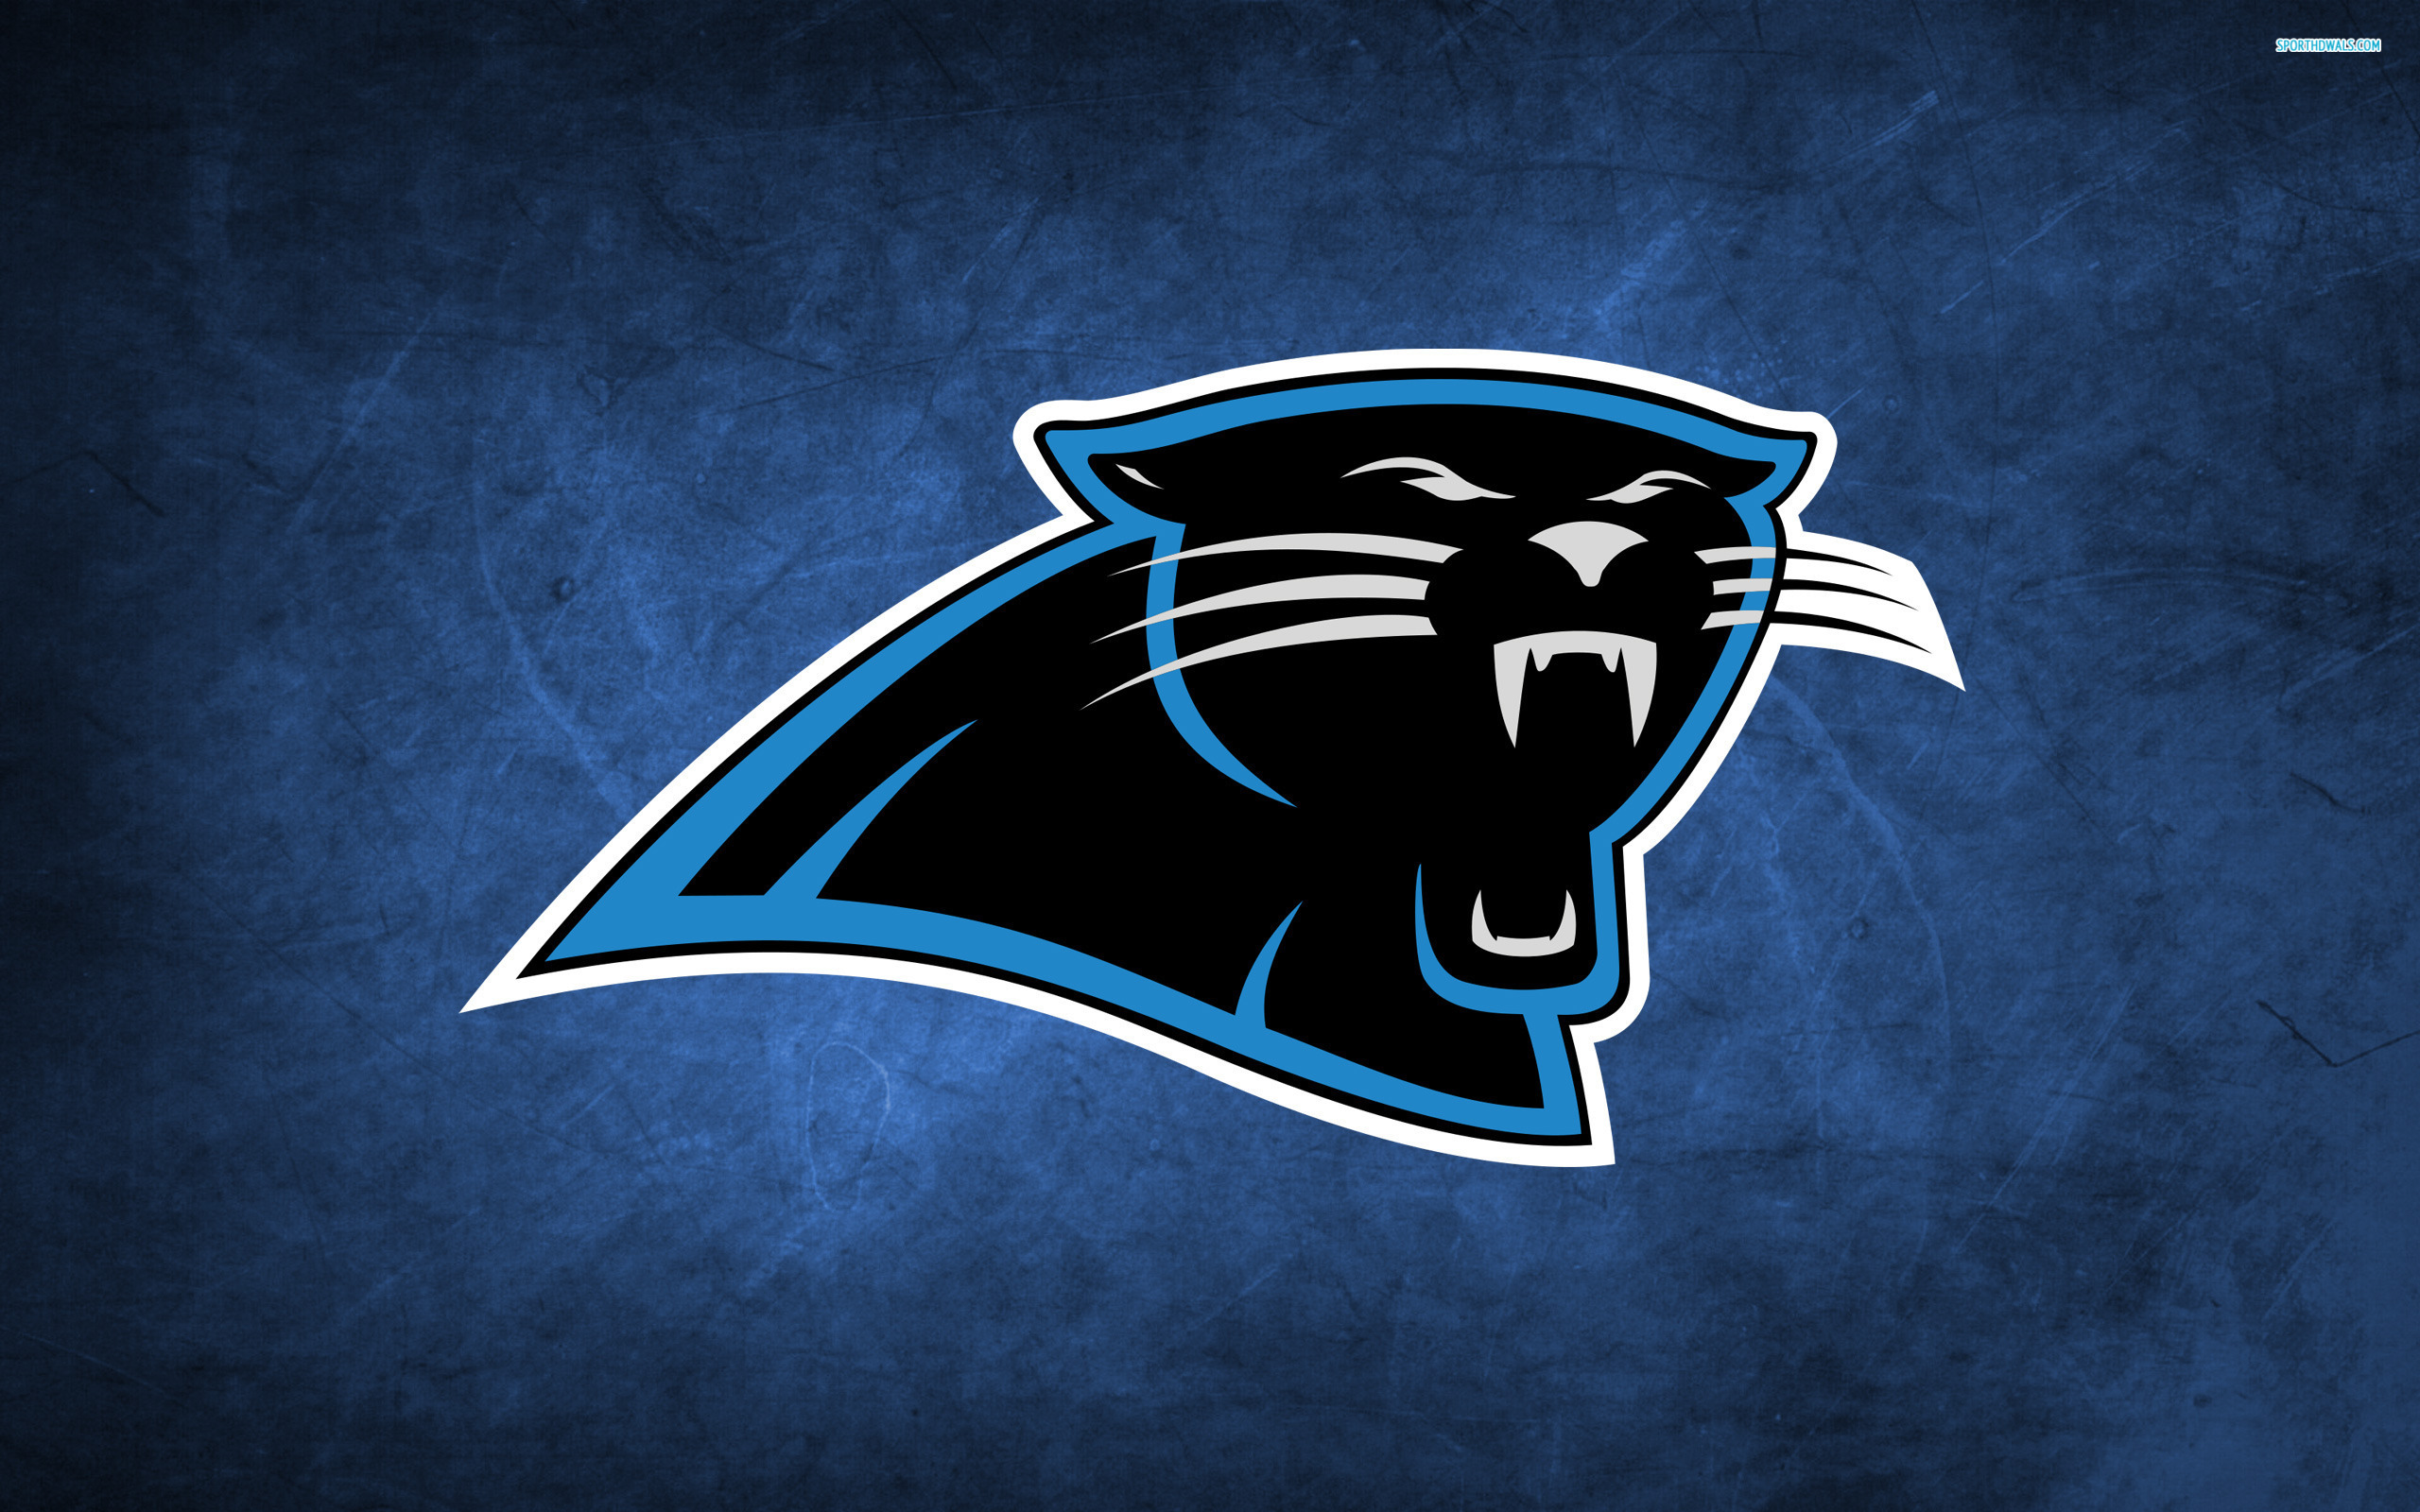 Panthers Wallpaper 2560x1600 69485